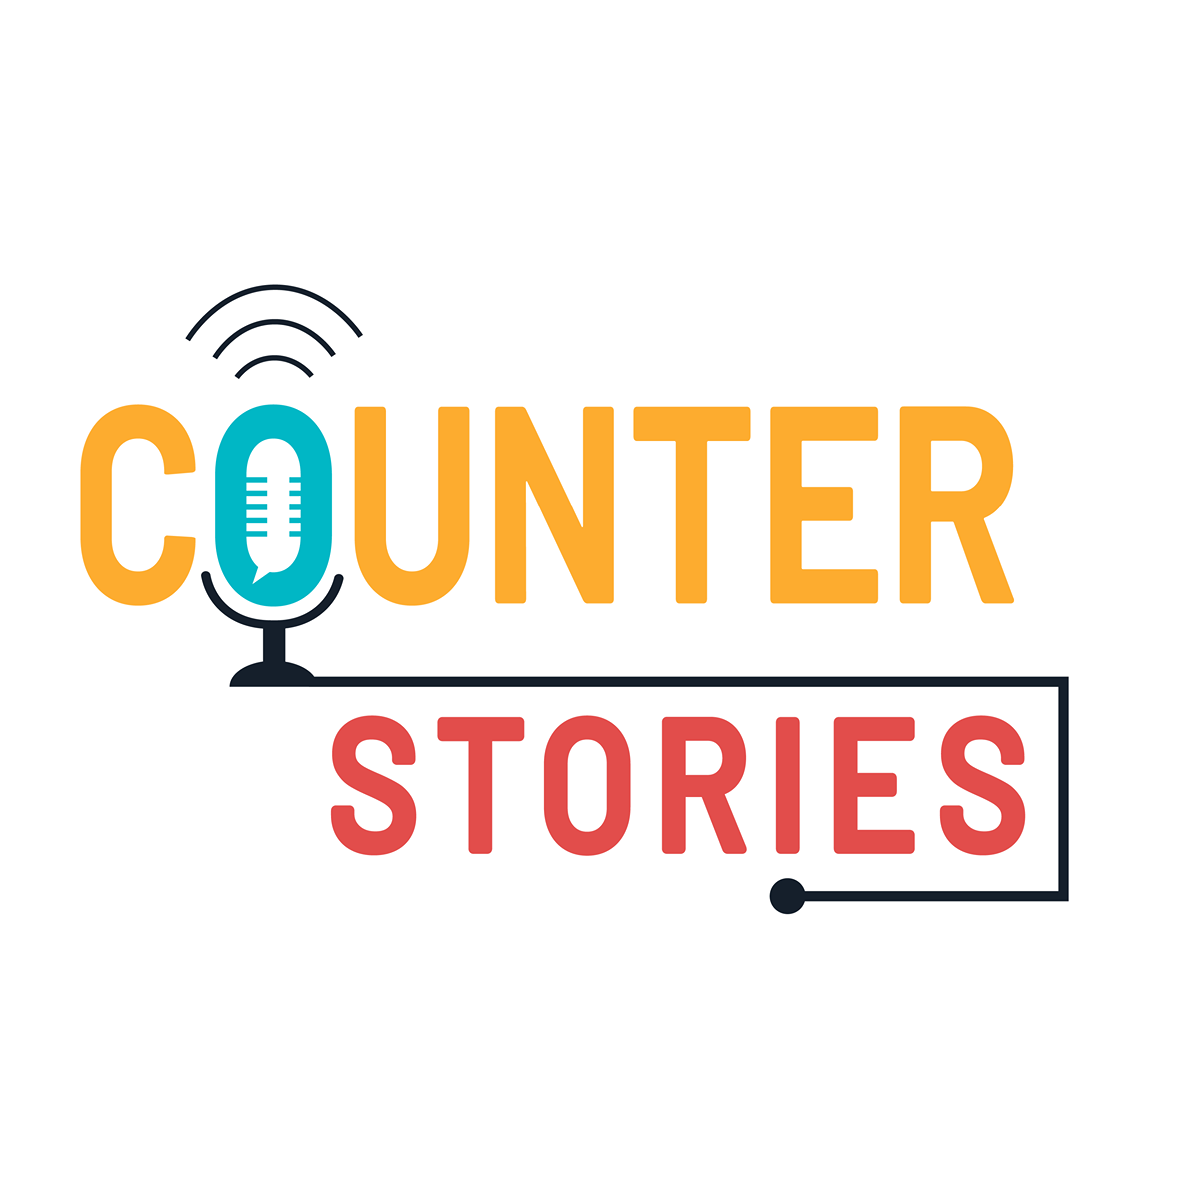 Counter Stories: The Frustration Surrounding Reopening Schools Pt 2 (half hour version)